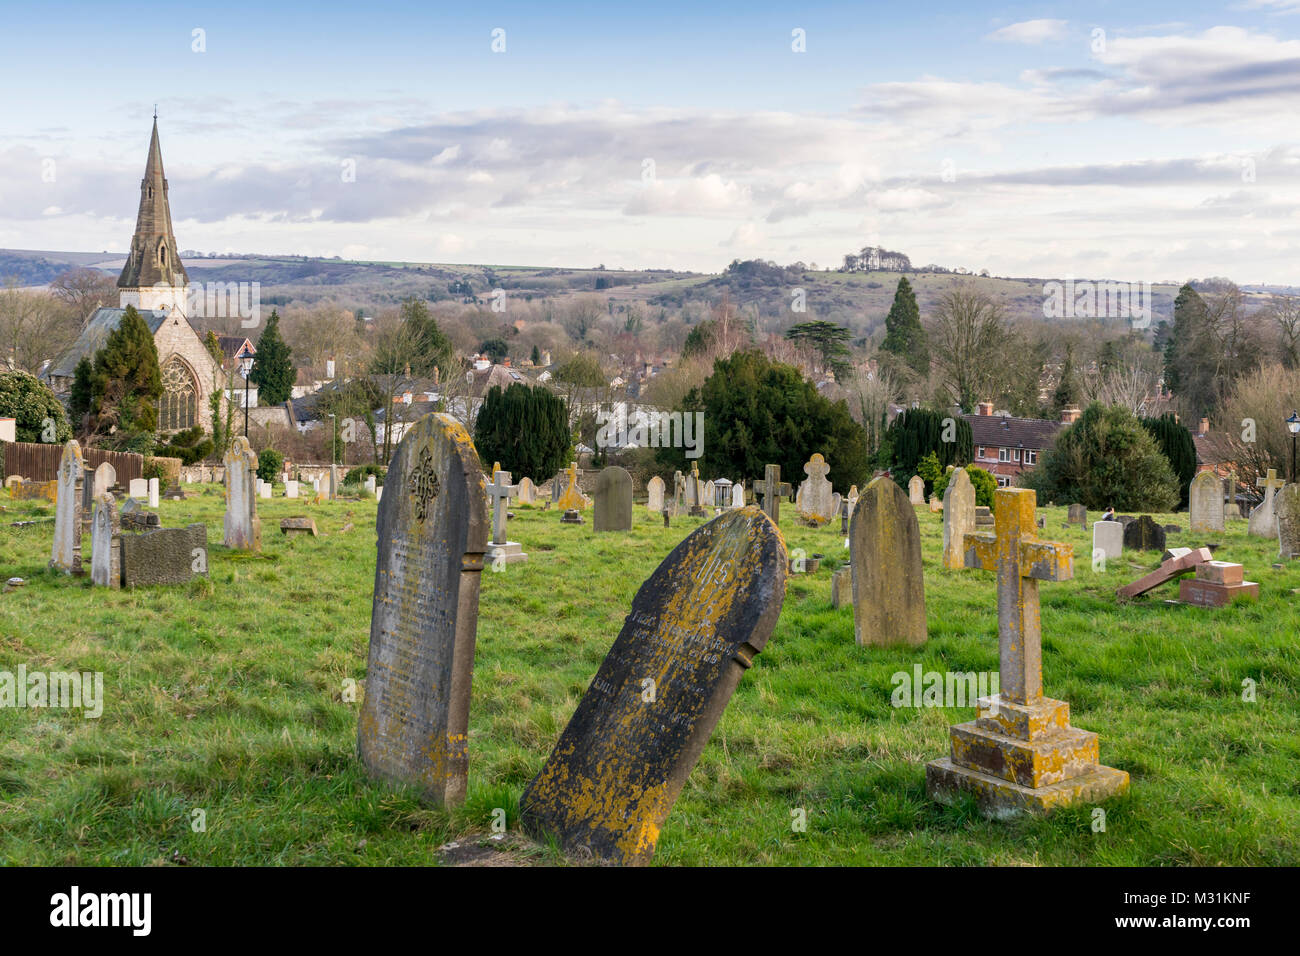 View over West Hill Cemetery with the Christ Church Centre in the background, St James Lane, Winchester, England, - Stock Image